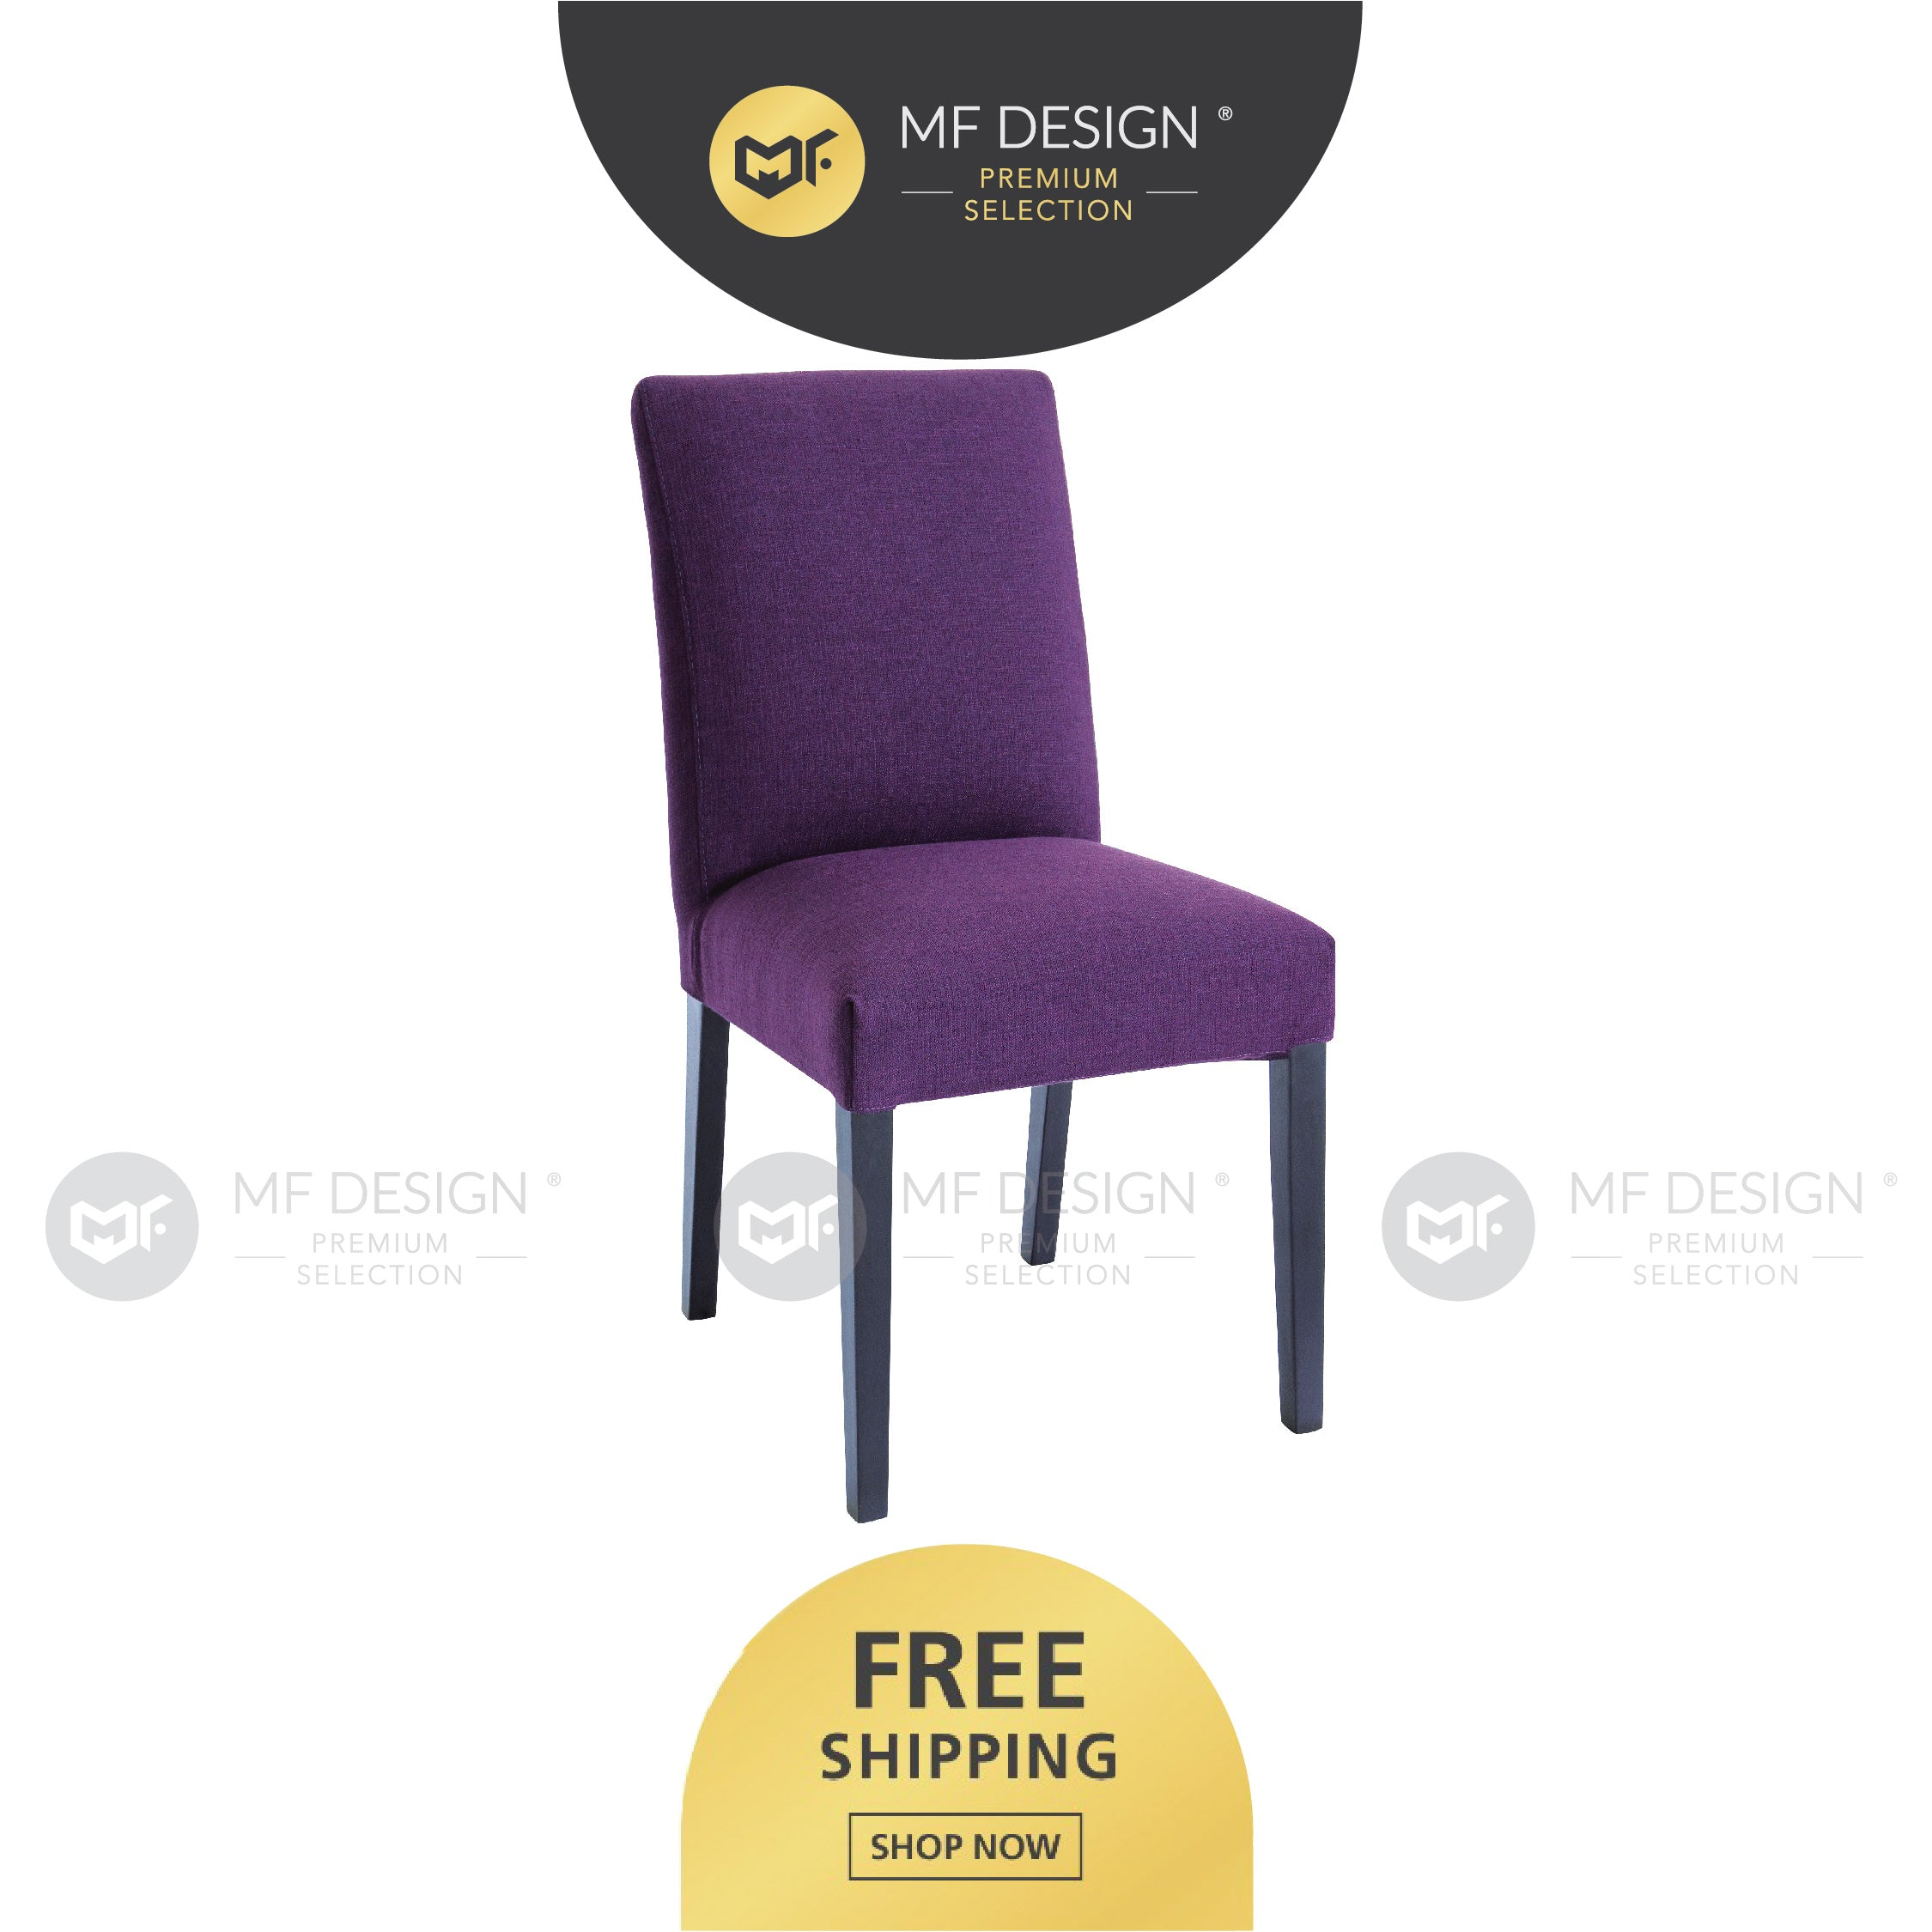 MFD Premium Hilda Dining Chair / Wooden Chair / Solid Rubber Wood / Kerusi Makan Kayu Getah / Living Room / Scandinavian